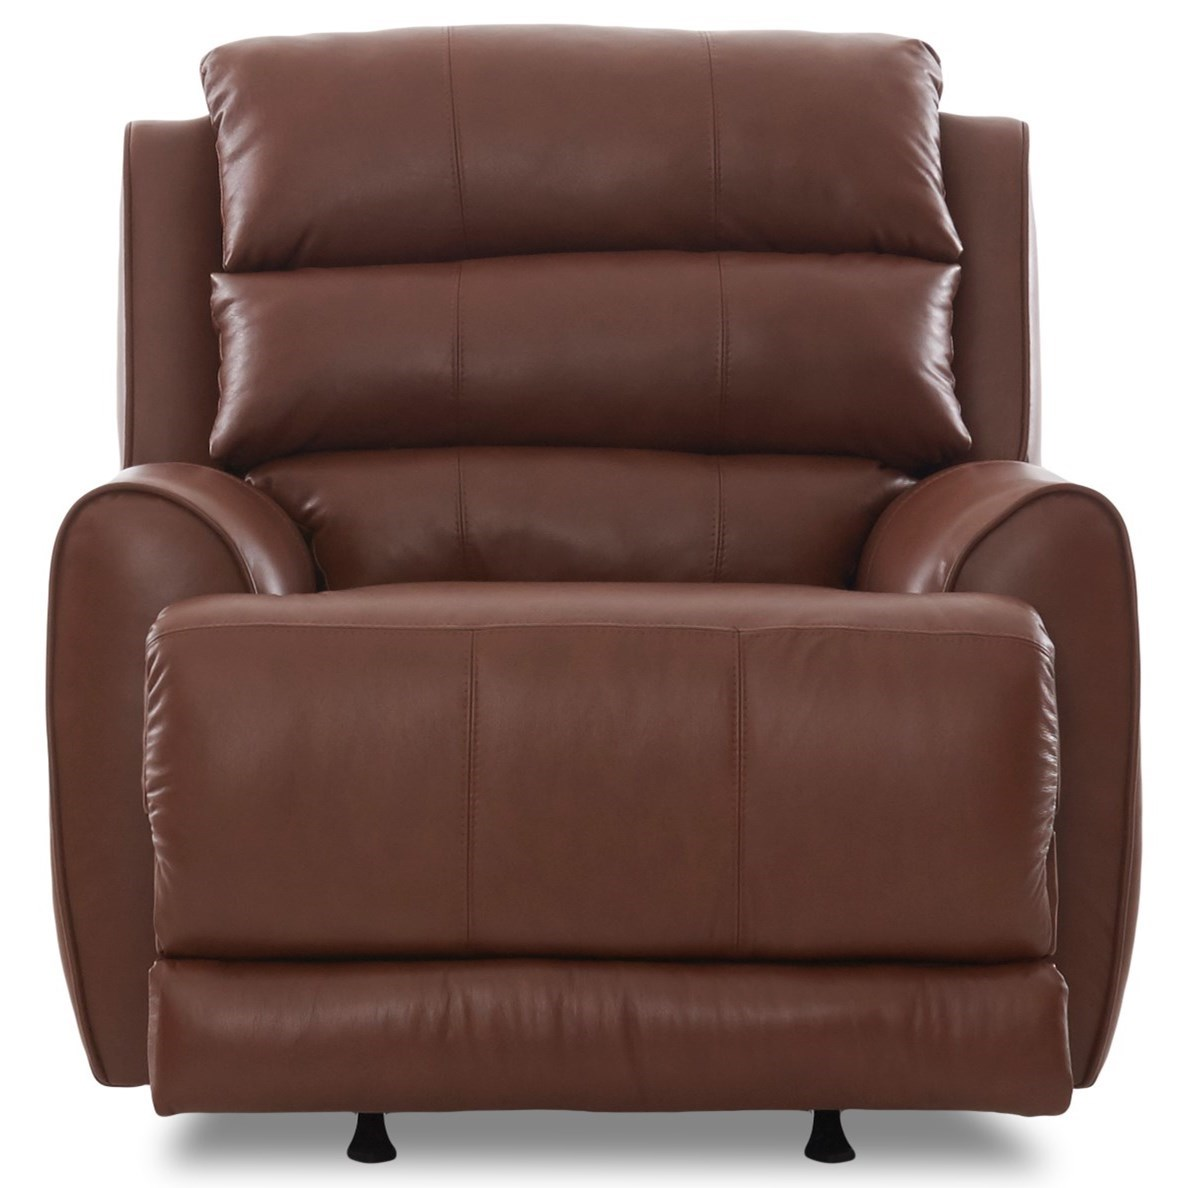 Contemporary Power Rocking Reclining Chair with Power Head/Lumbar, USB Port, and Bluetooth Functionality